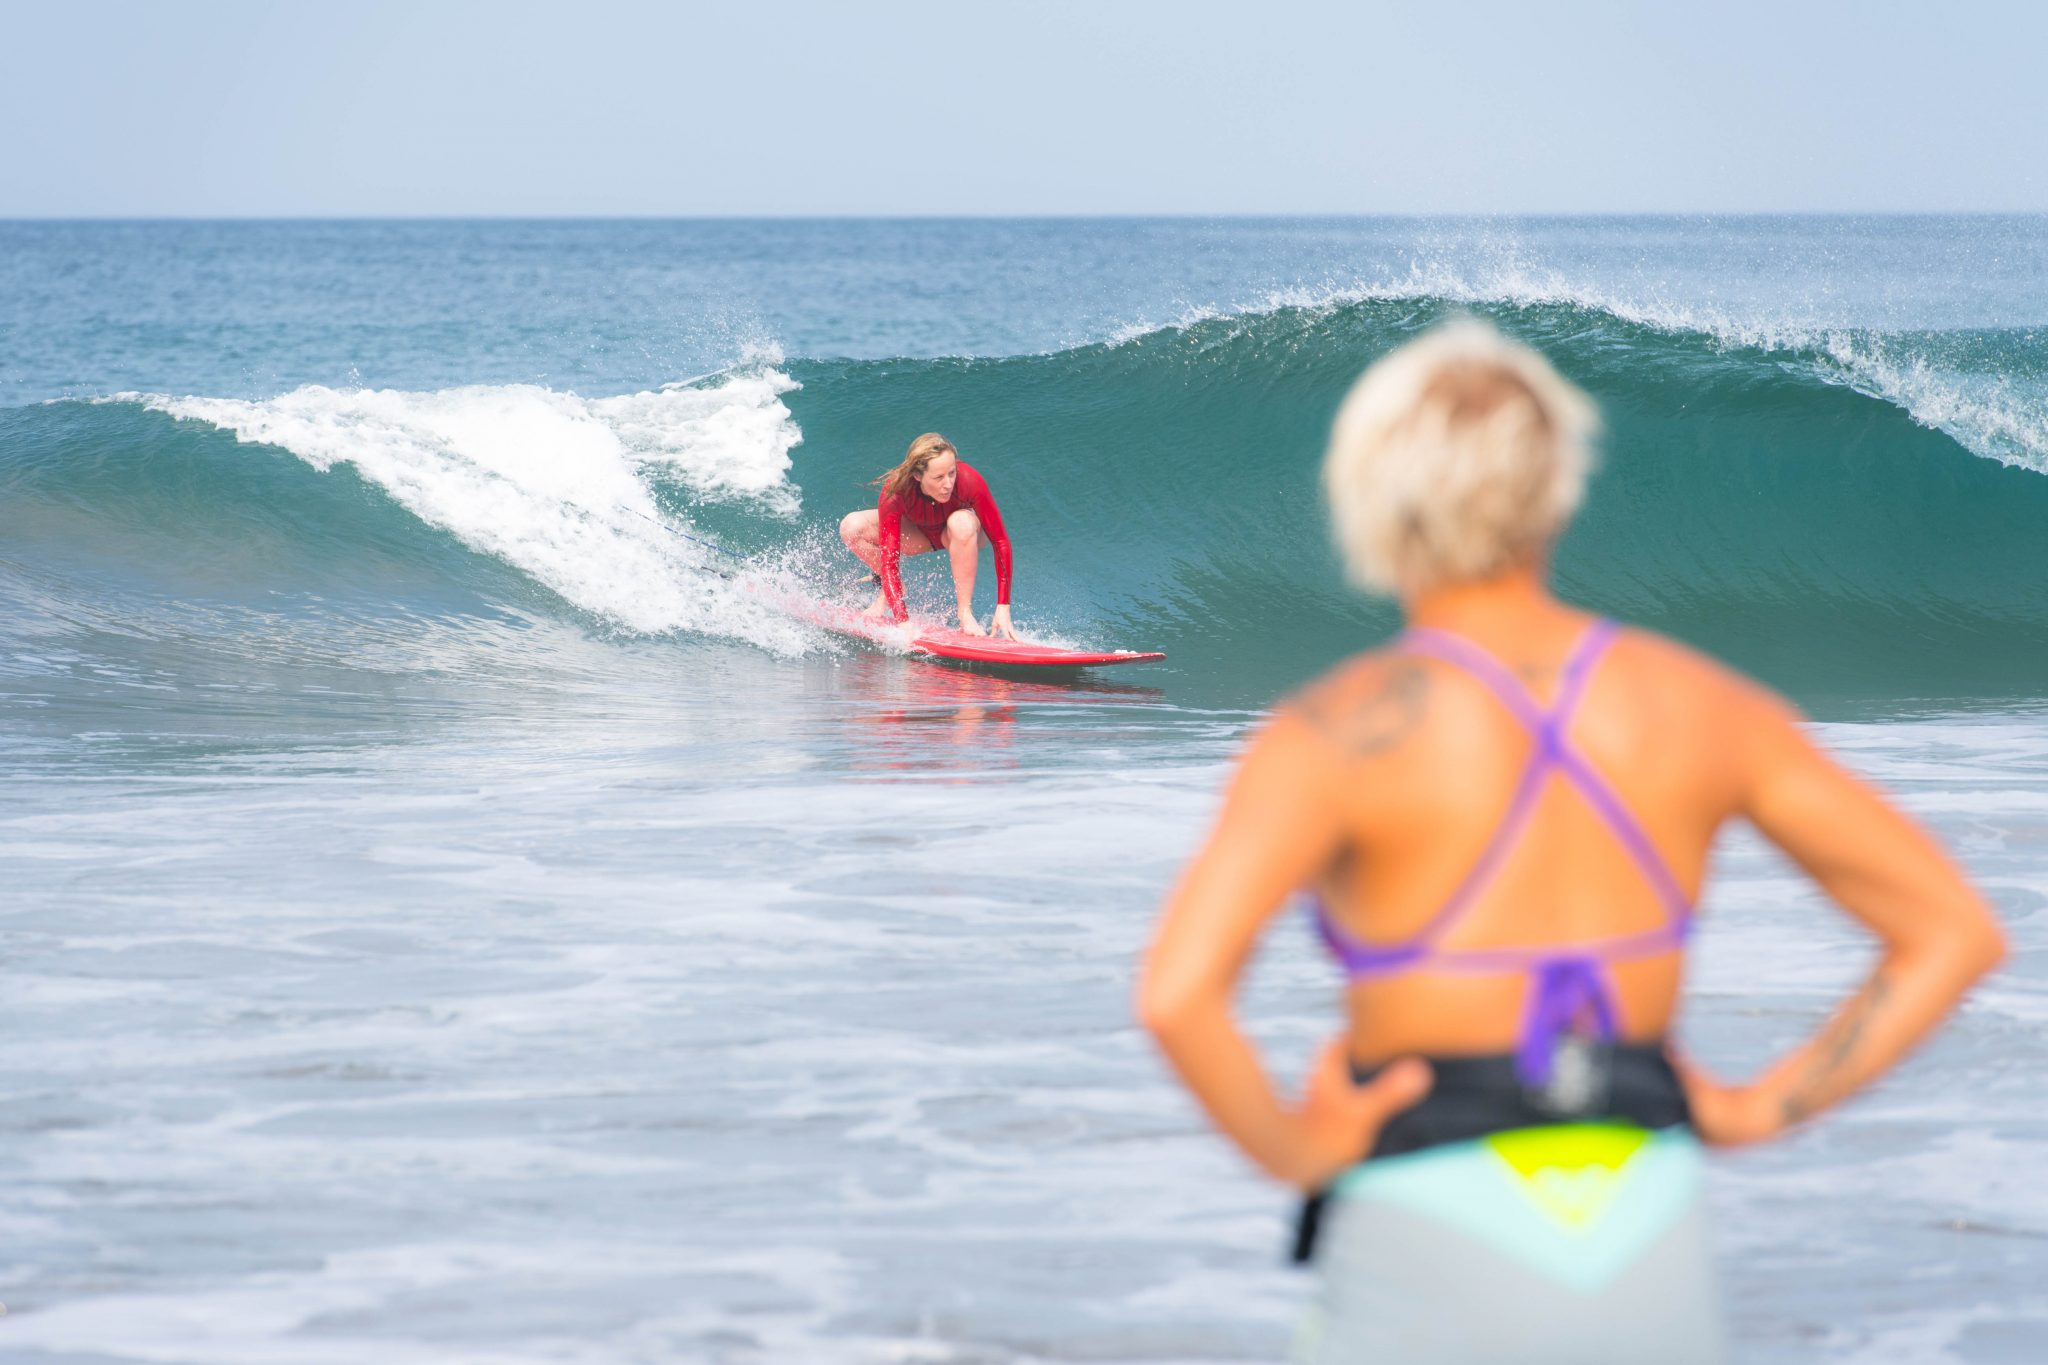 A surfer's glow, all year long